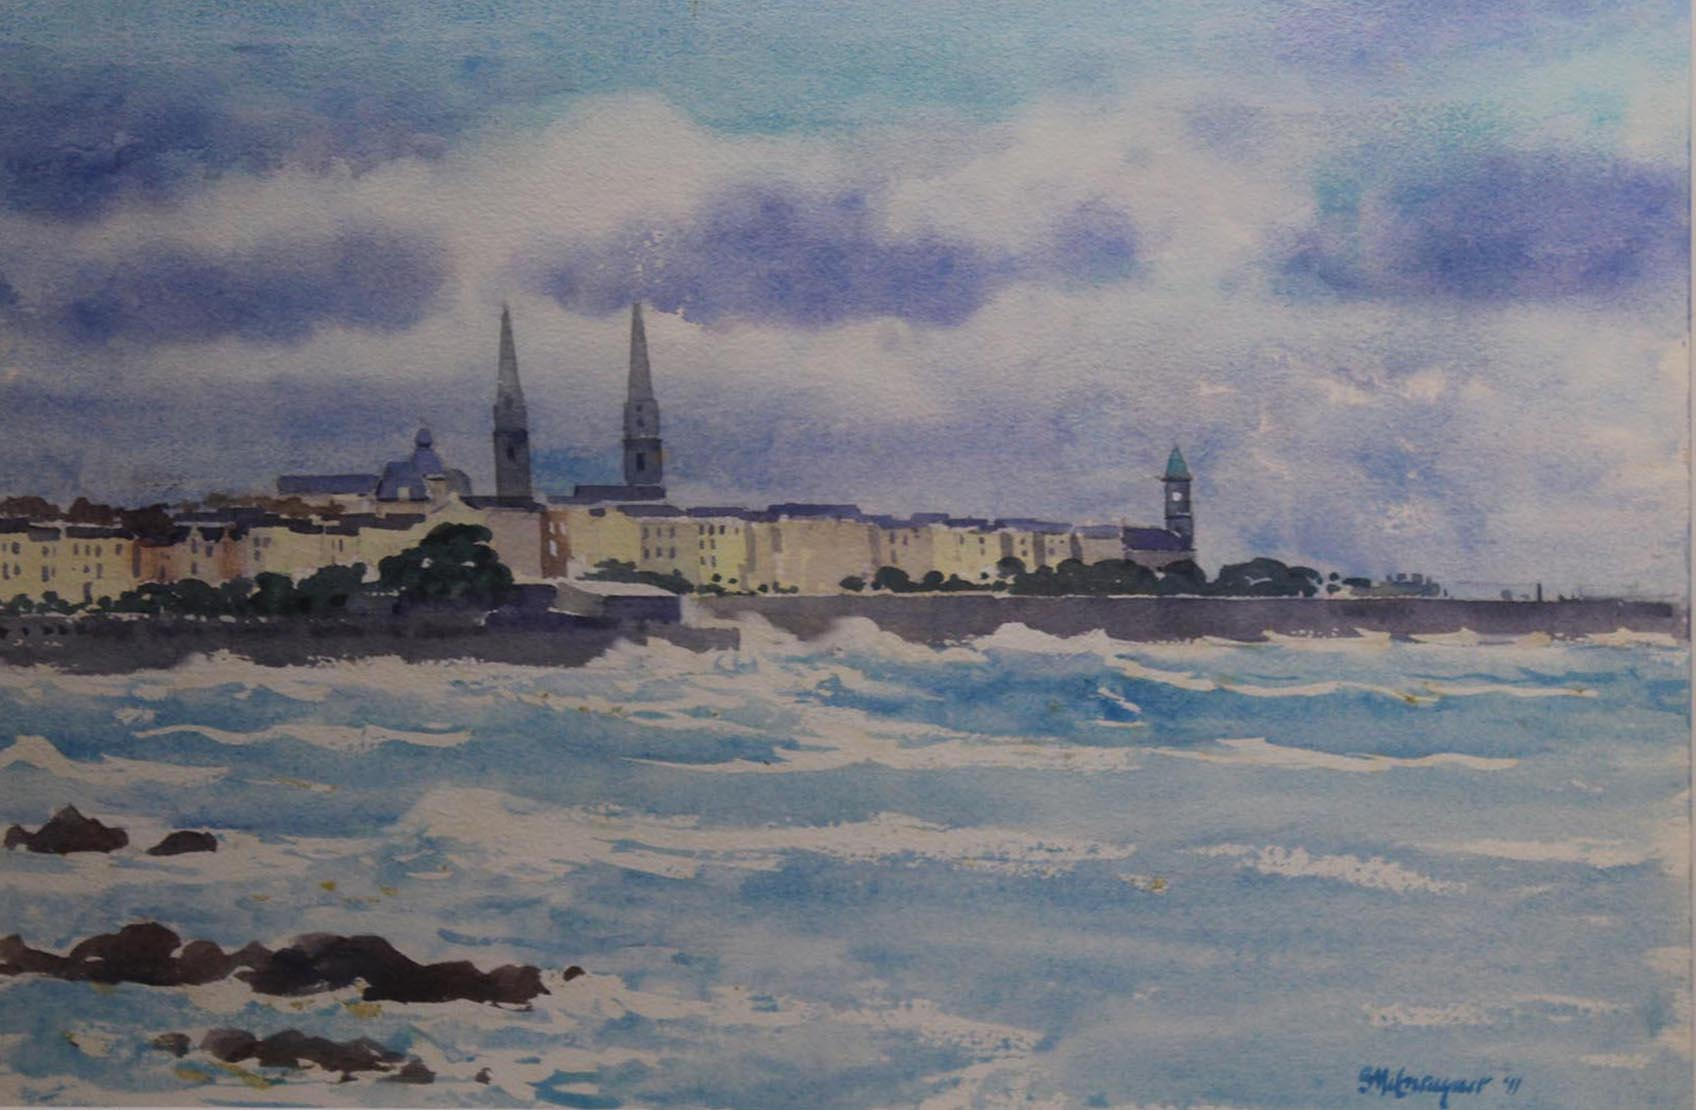 """Lot 58 - Brett McEntaggert VIEW OF DUN LAOGHAIRE Watercolour, 12"""" x 17"""" (30.5 x 45.7 cm), signed & dated"""